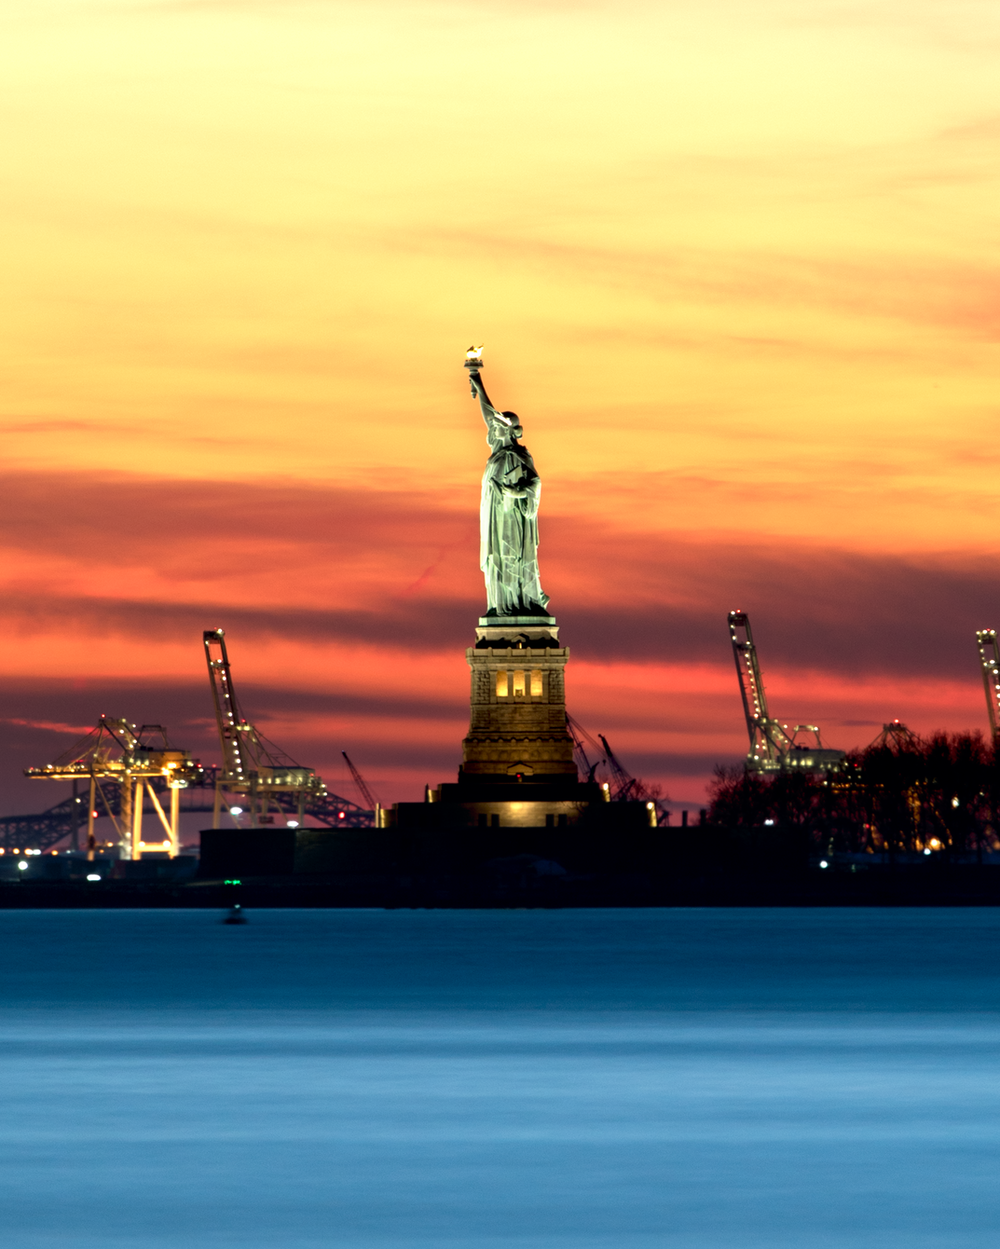 panorama Statue of Liberty during night time